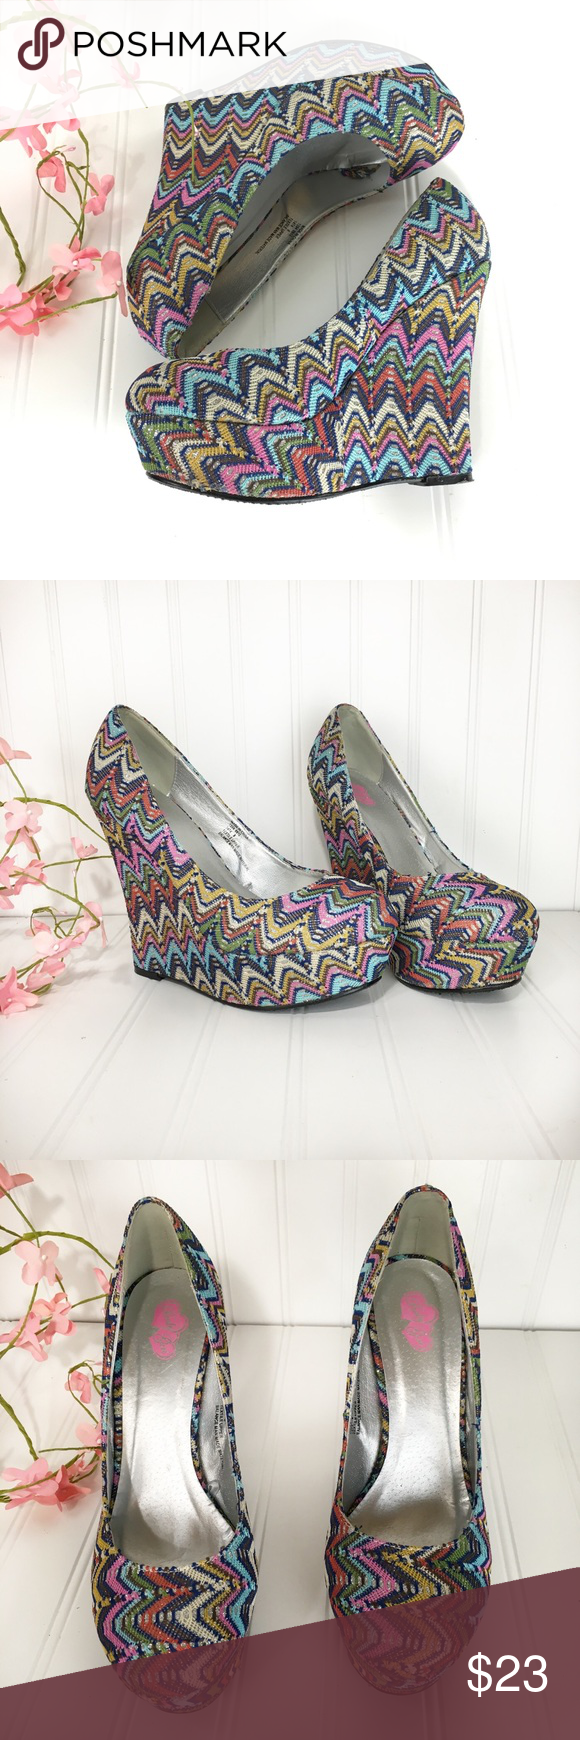 5e54047246b5 Rainbow sparkly fabric wedge heels